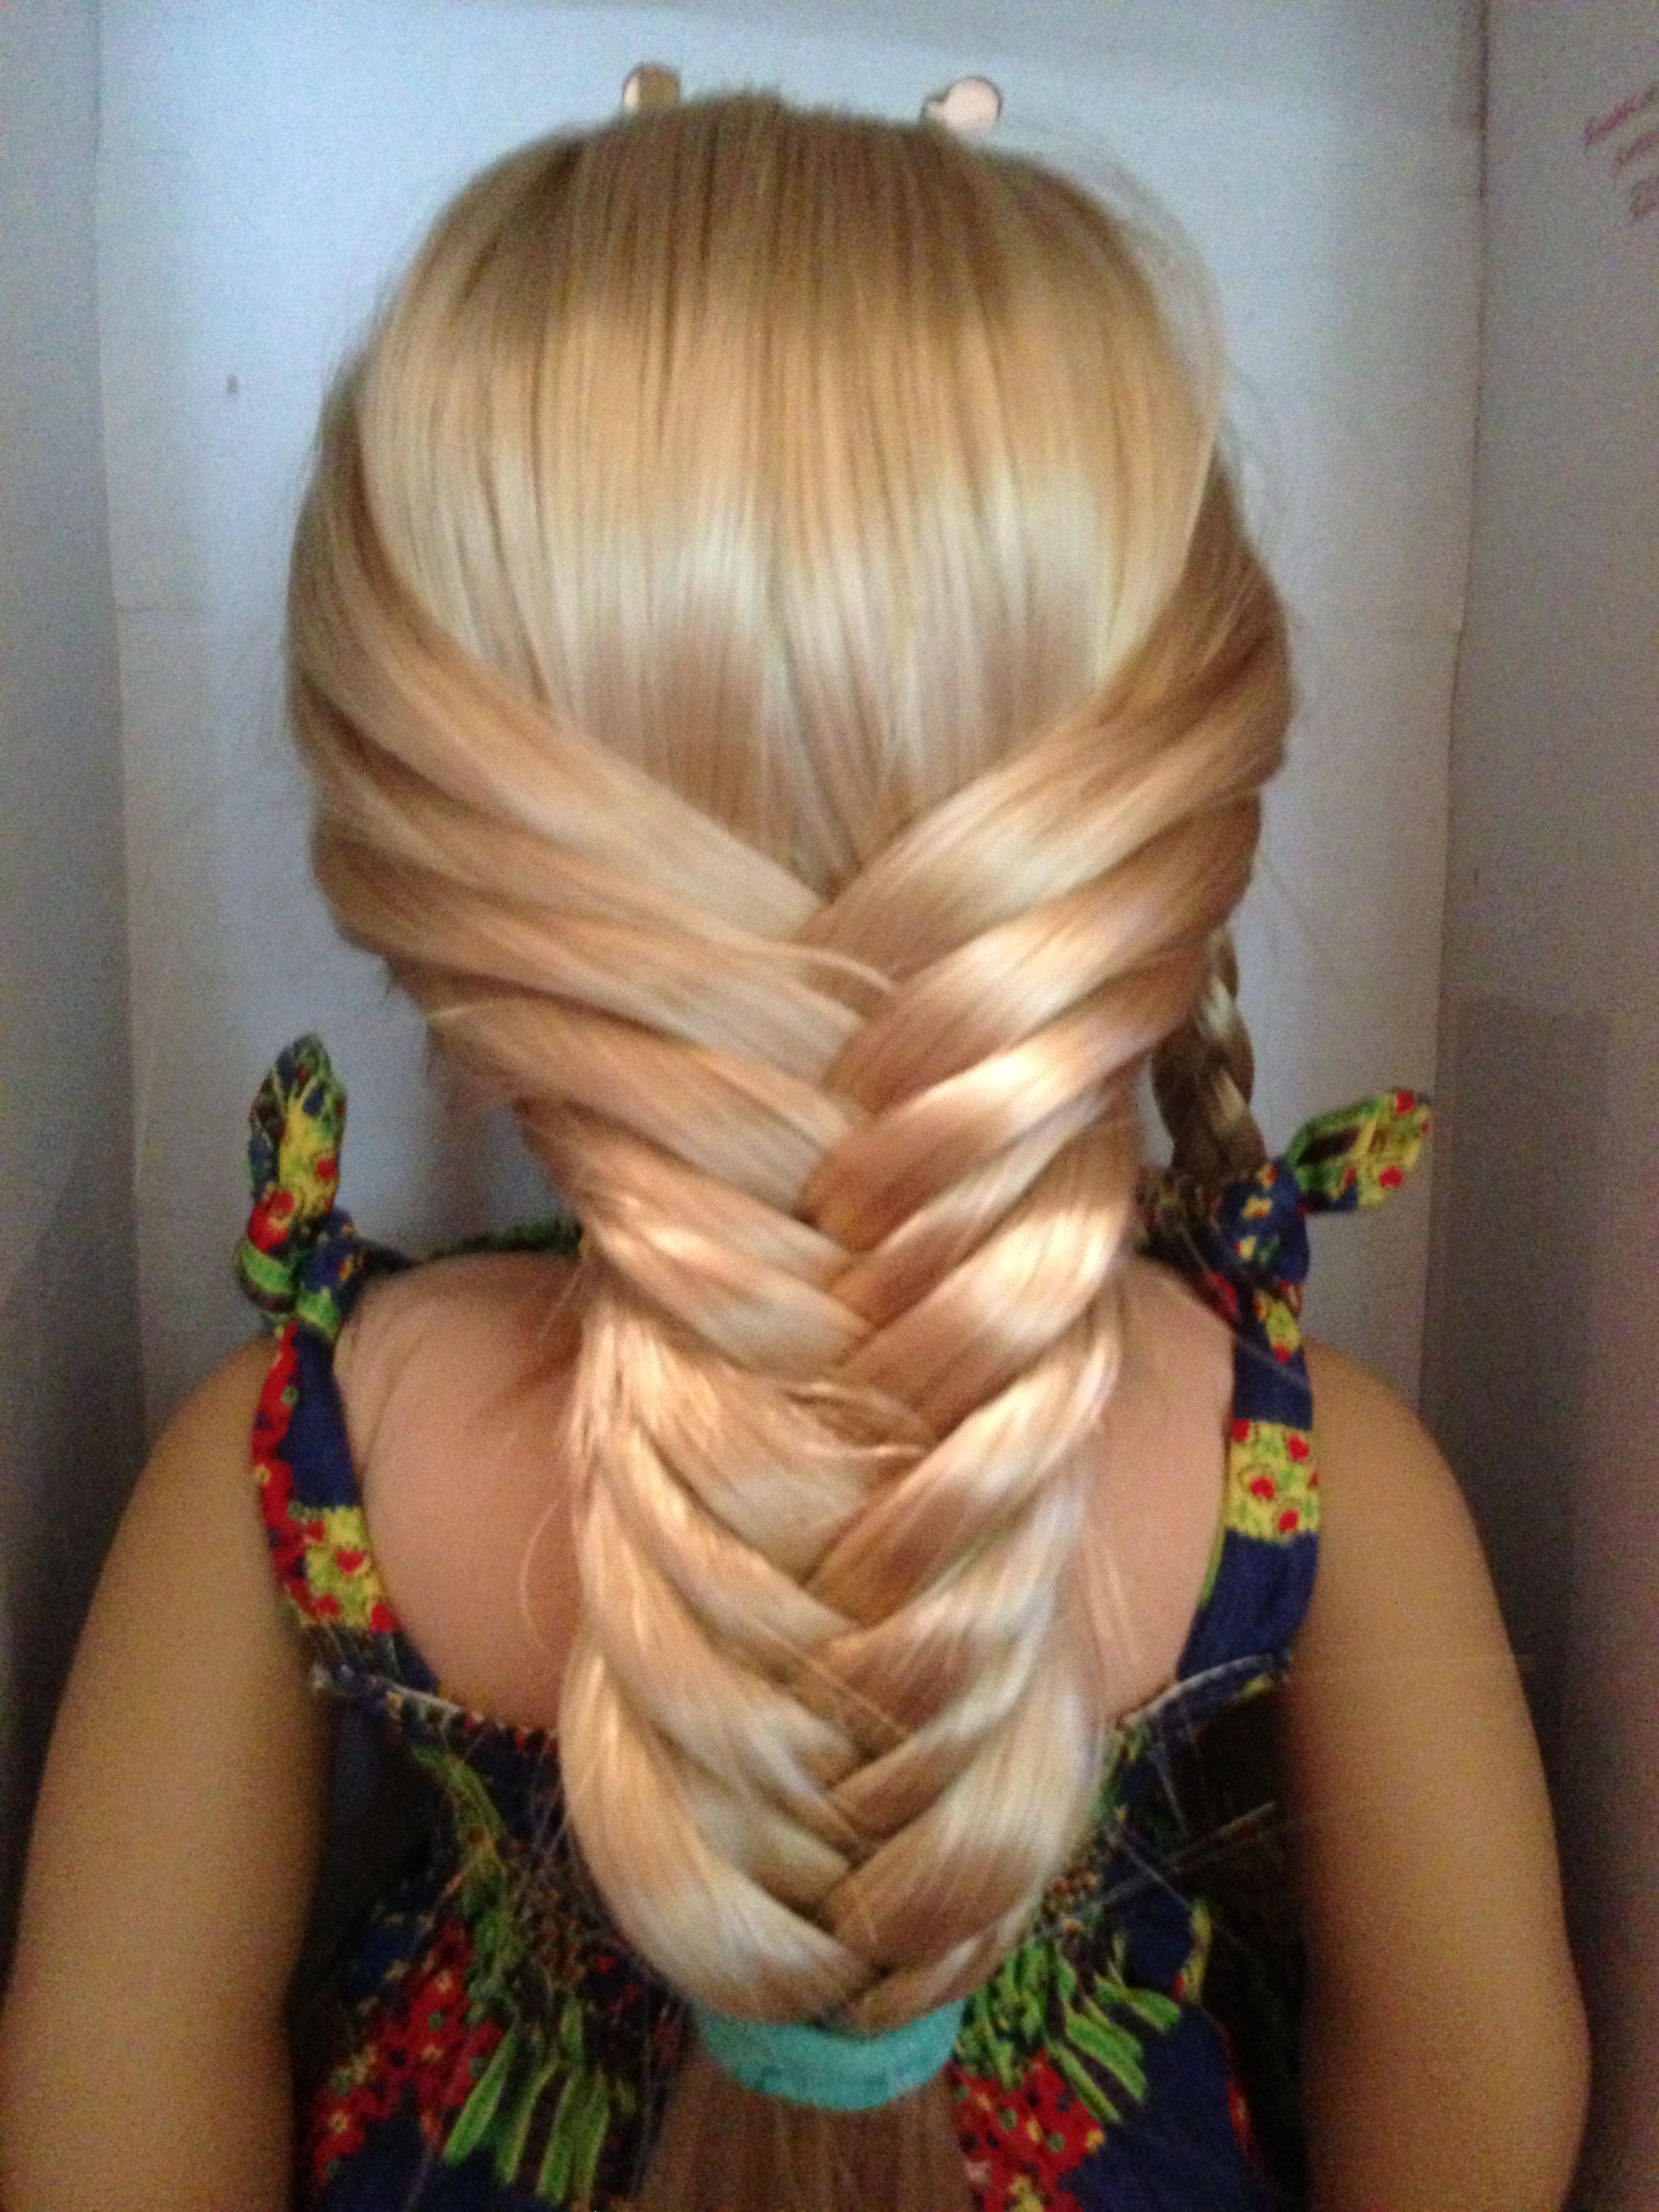 Fishtail braid are perfect and easy to do on American Girl doll